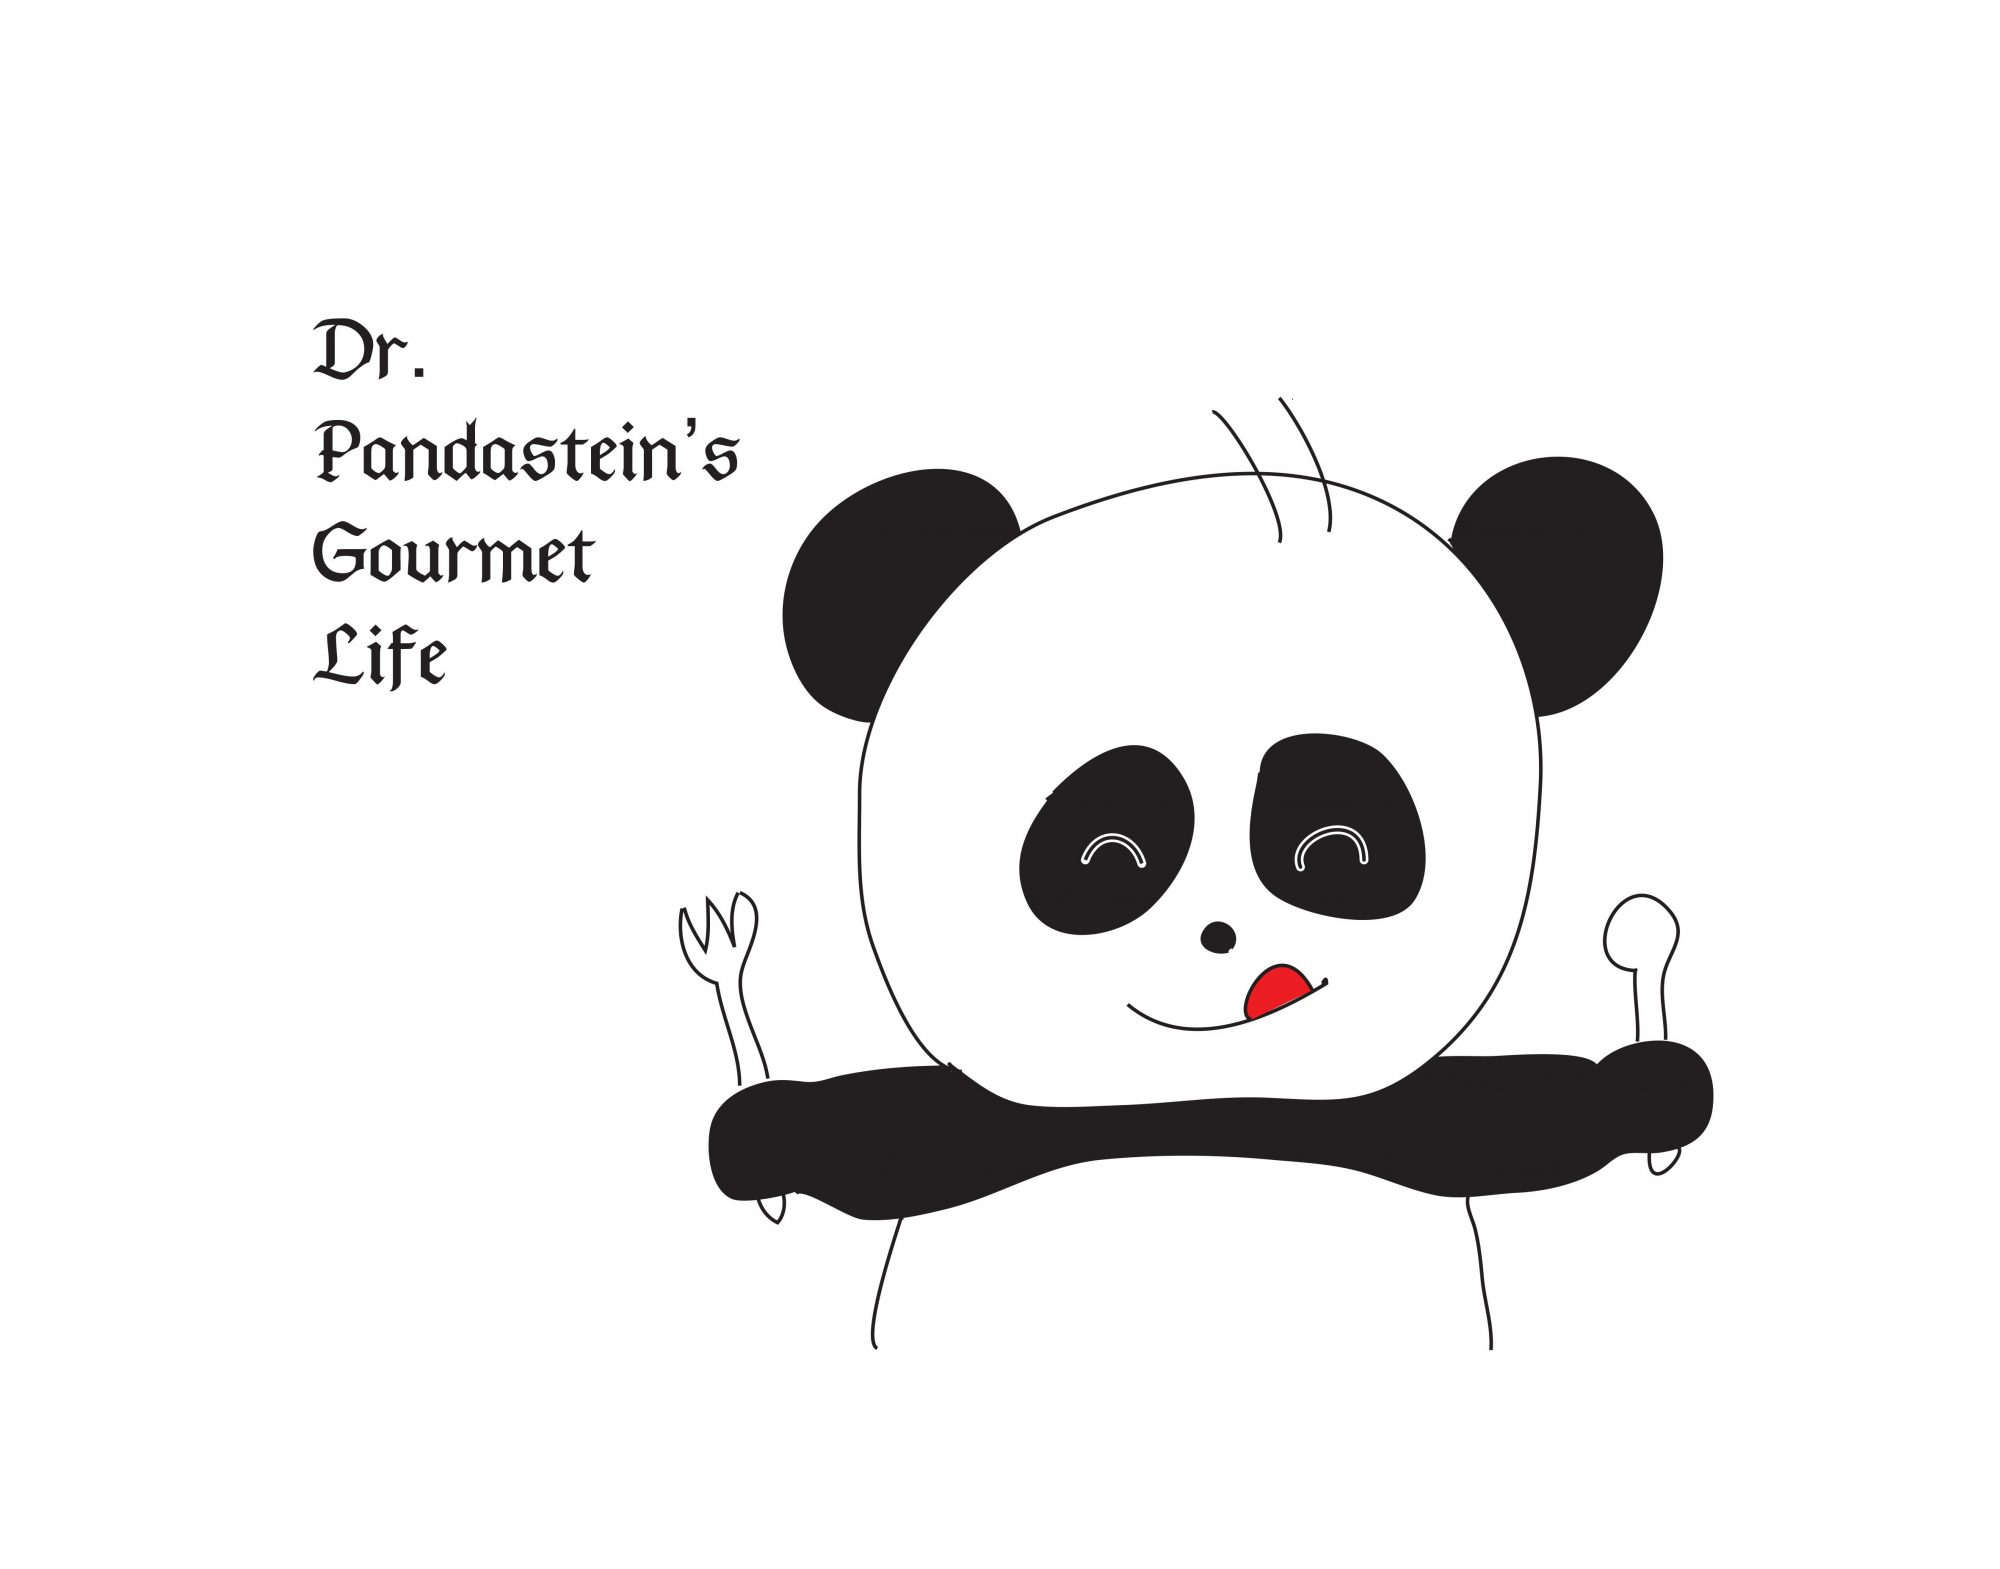 Dr. Pandastein's Life and Learning